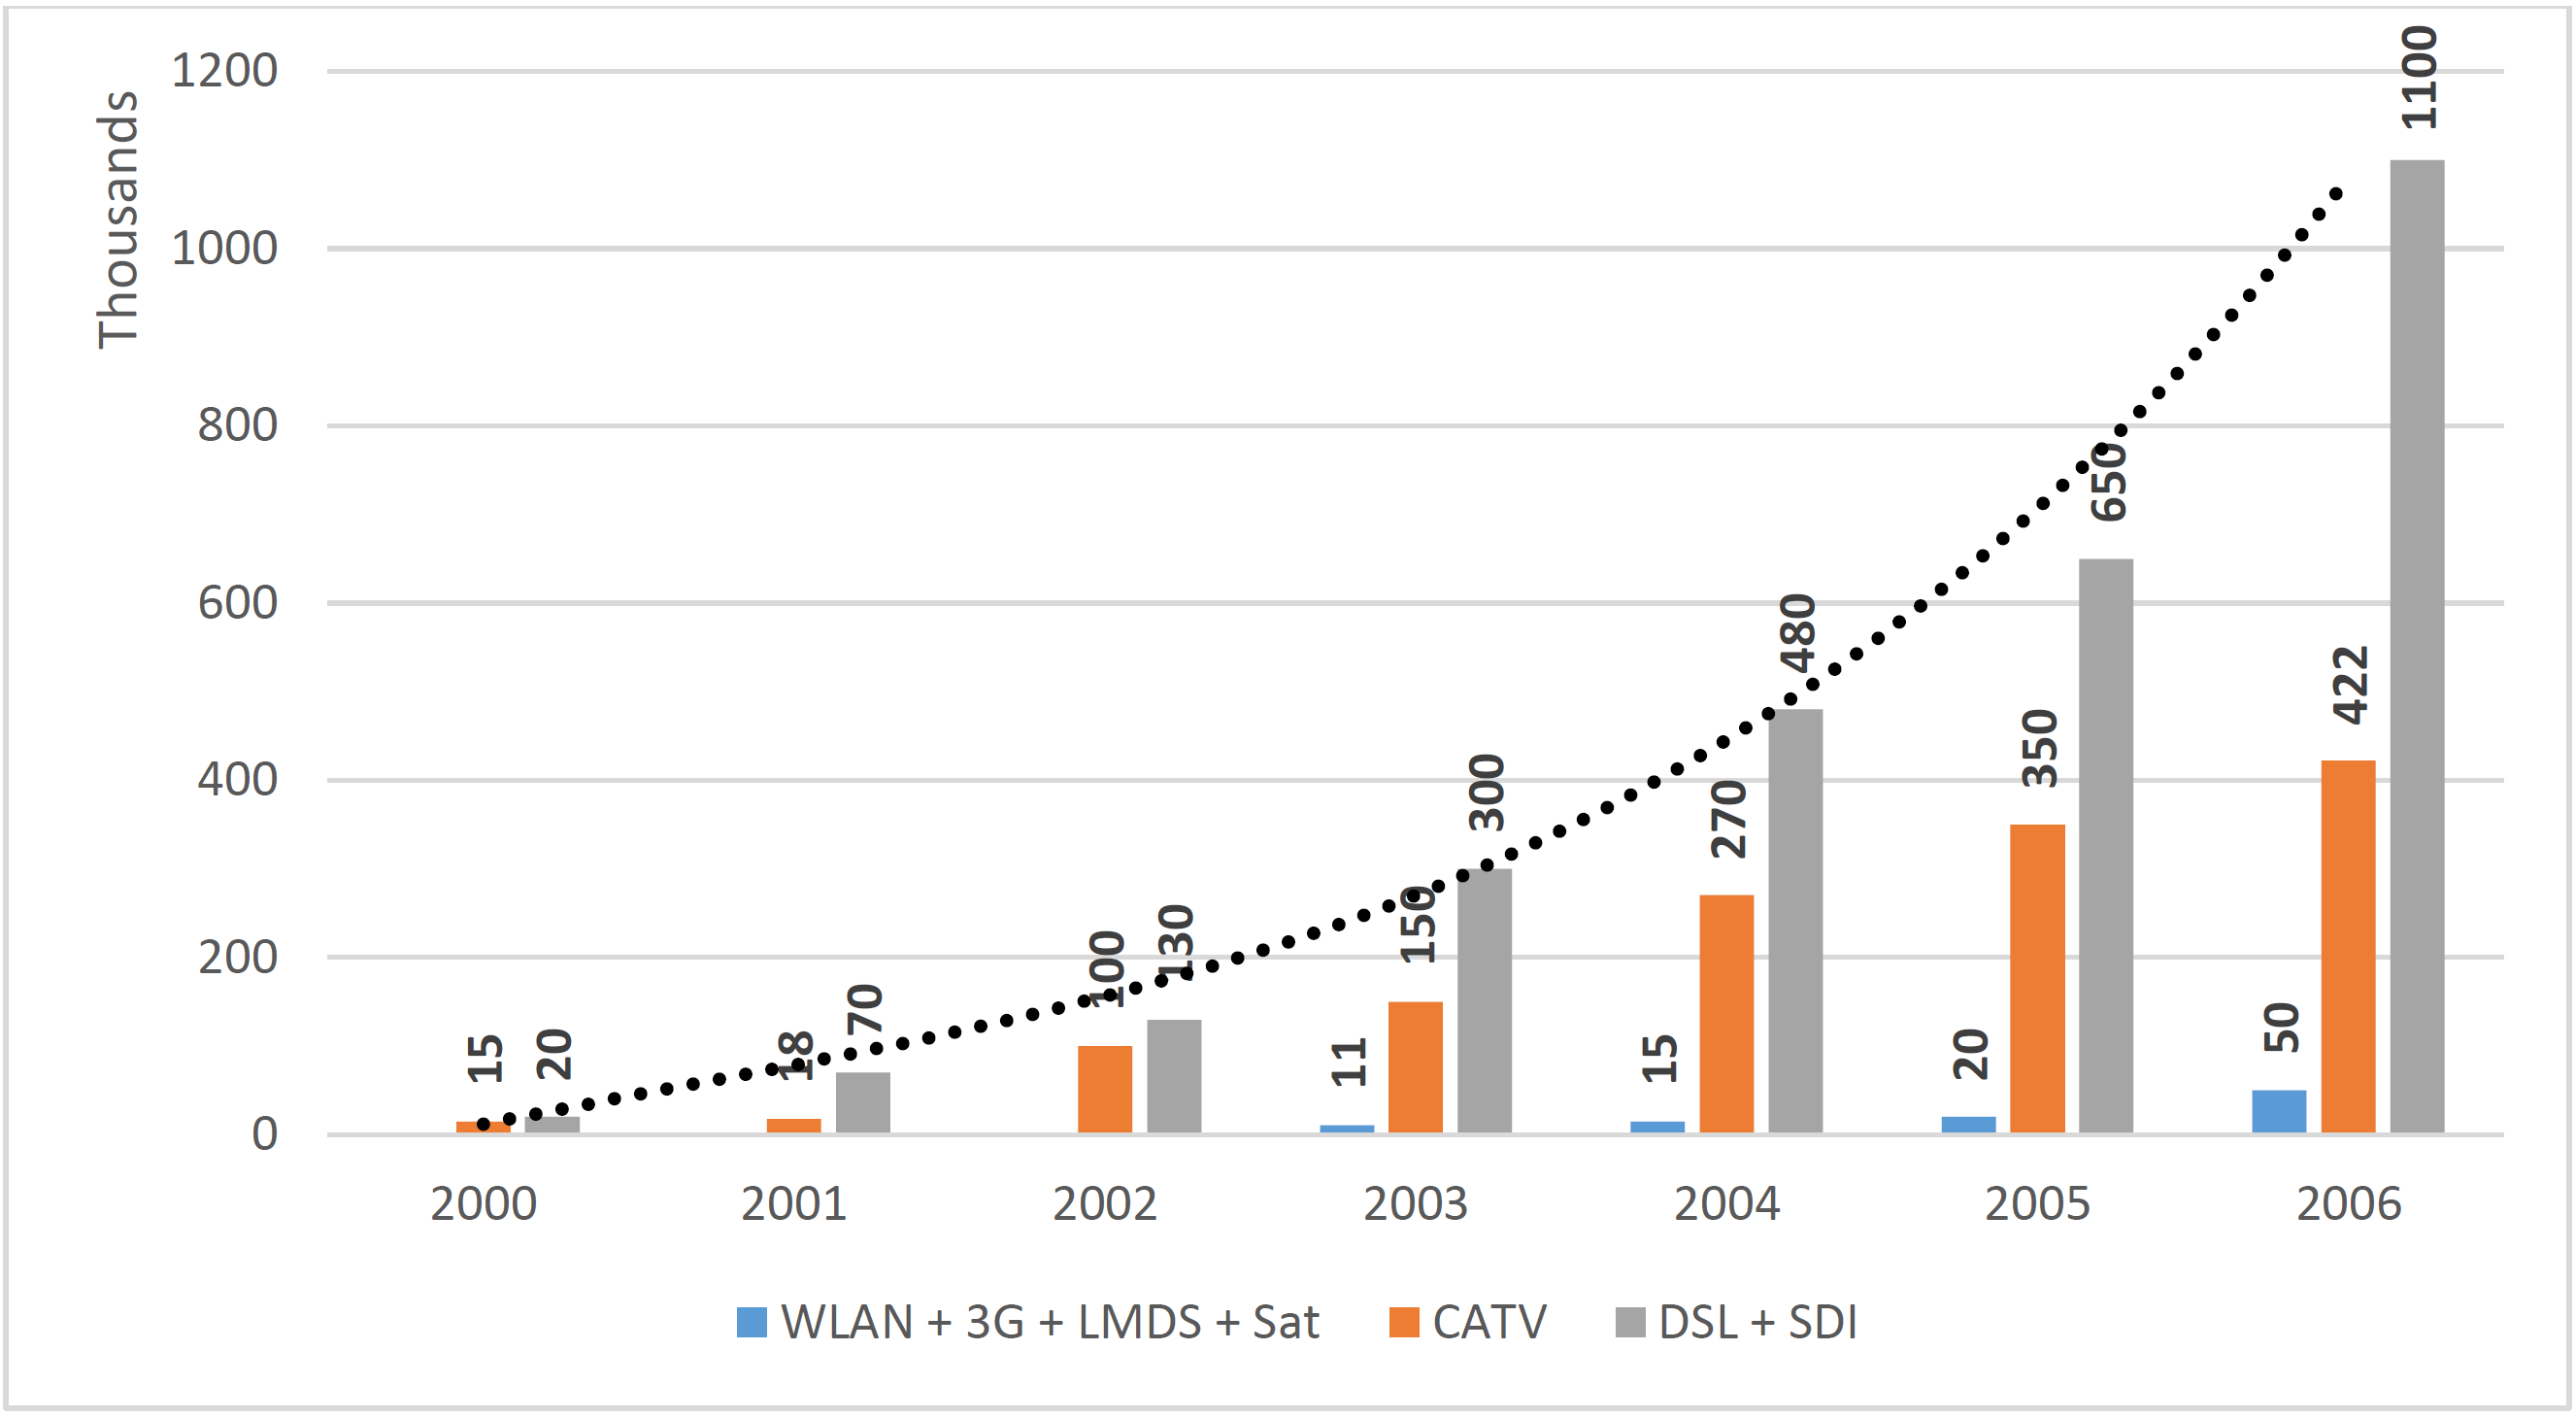 Figure 4 Usage of broadband access technologies in Poland, before and after accession EU